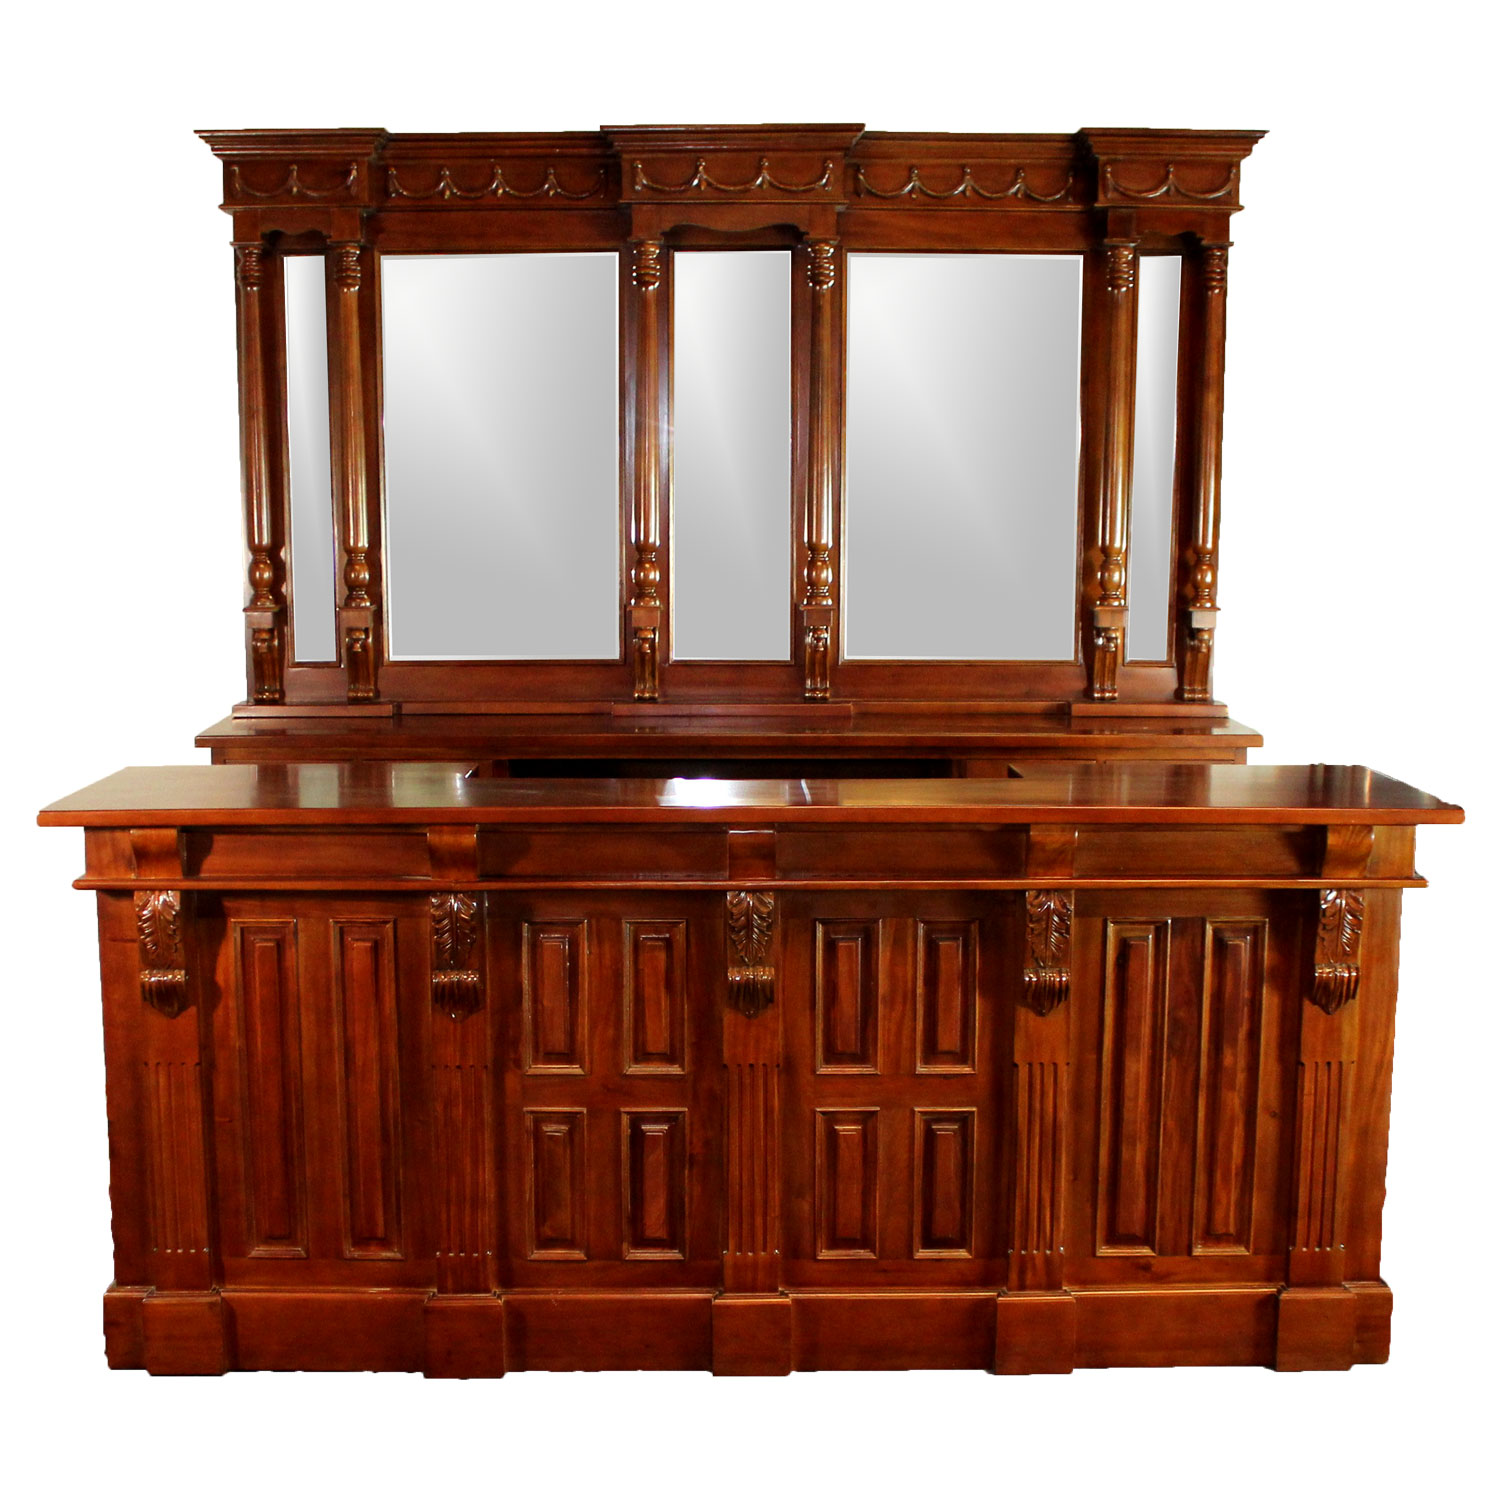 Home Bars For Sale: 8 Ft Front & Back Home Bar Antique Replica Mahogany Wine